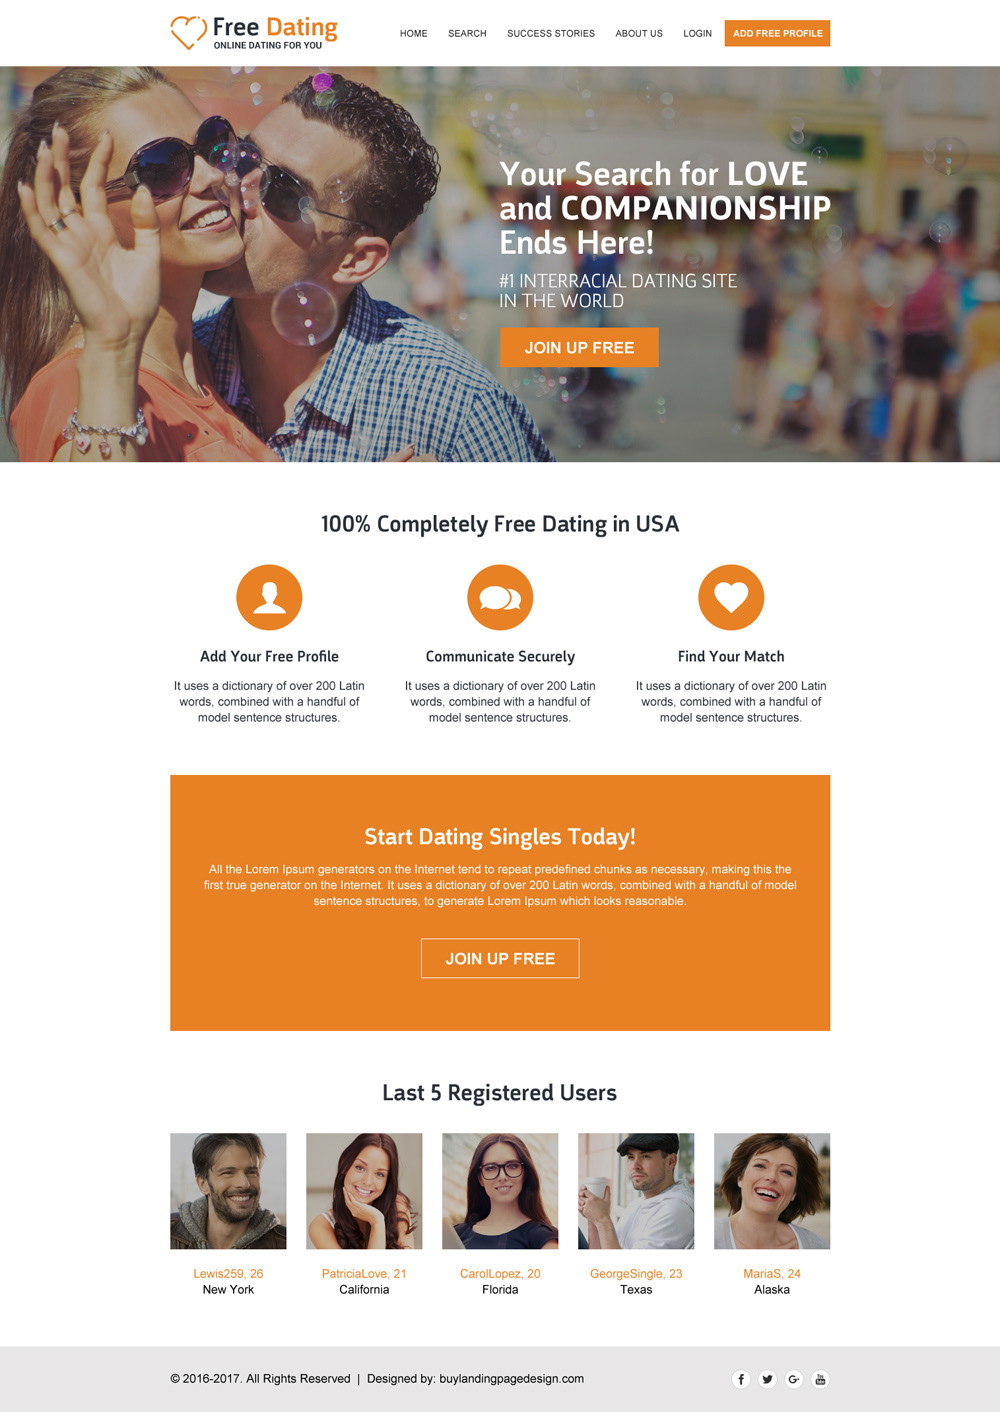 free dating website design